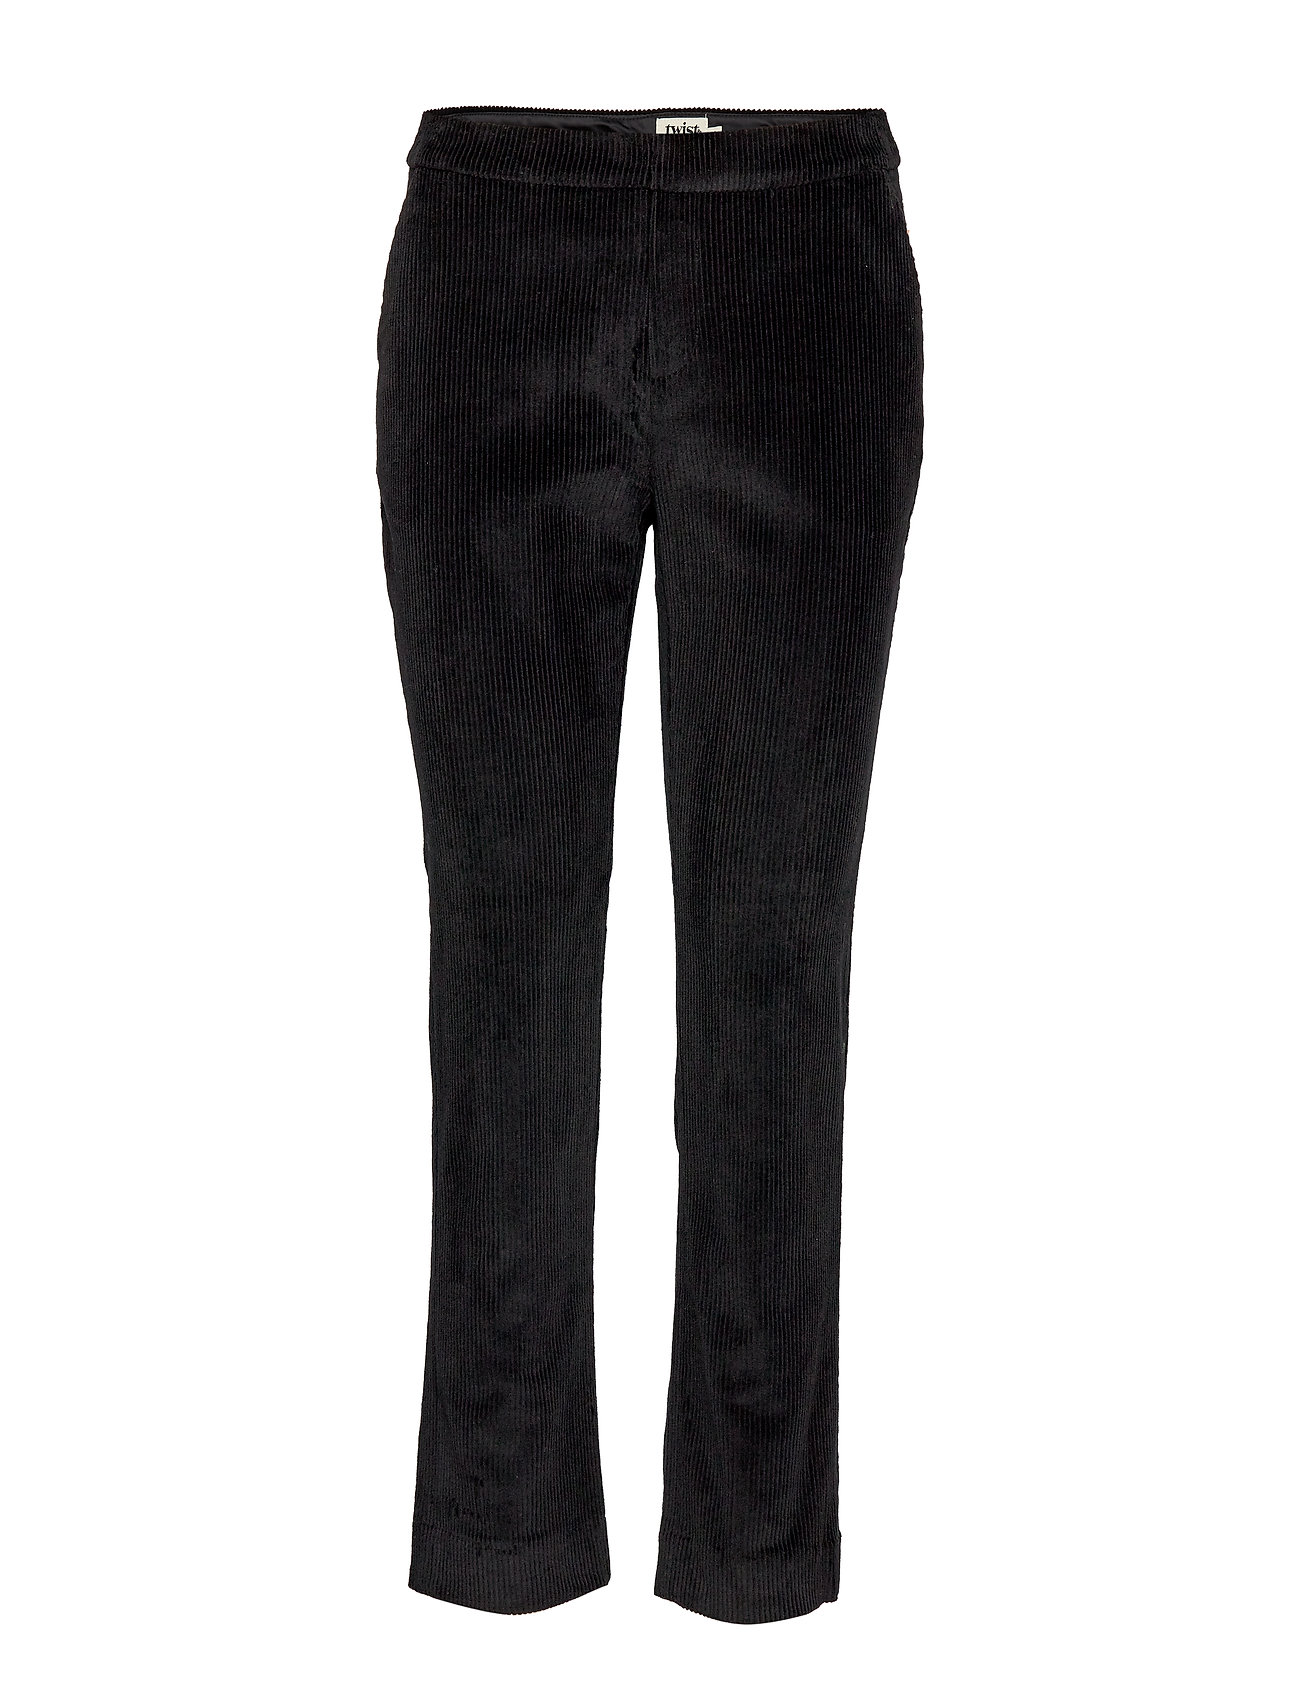 Twist & Tango Lilly Cord Trousers - BLACK